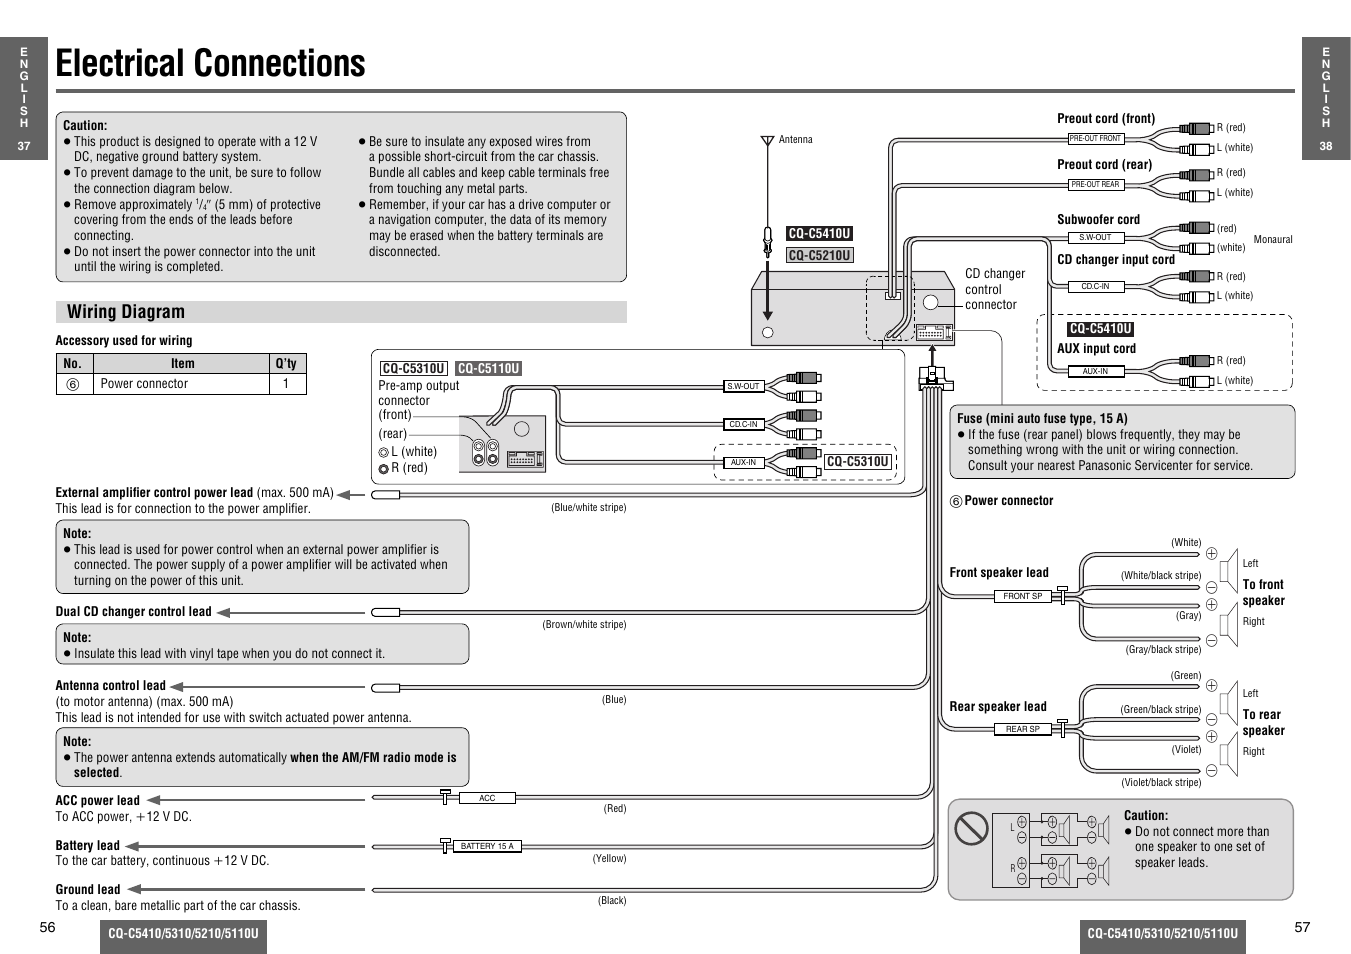 Panasonic Cq C5110u Wiring Diagram Detailed Diagrams Cd Player Harness Further Car Stereo Electrical Connections C5310u User Petsafe